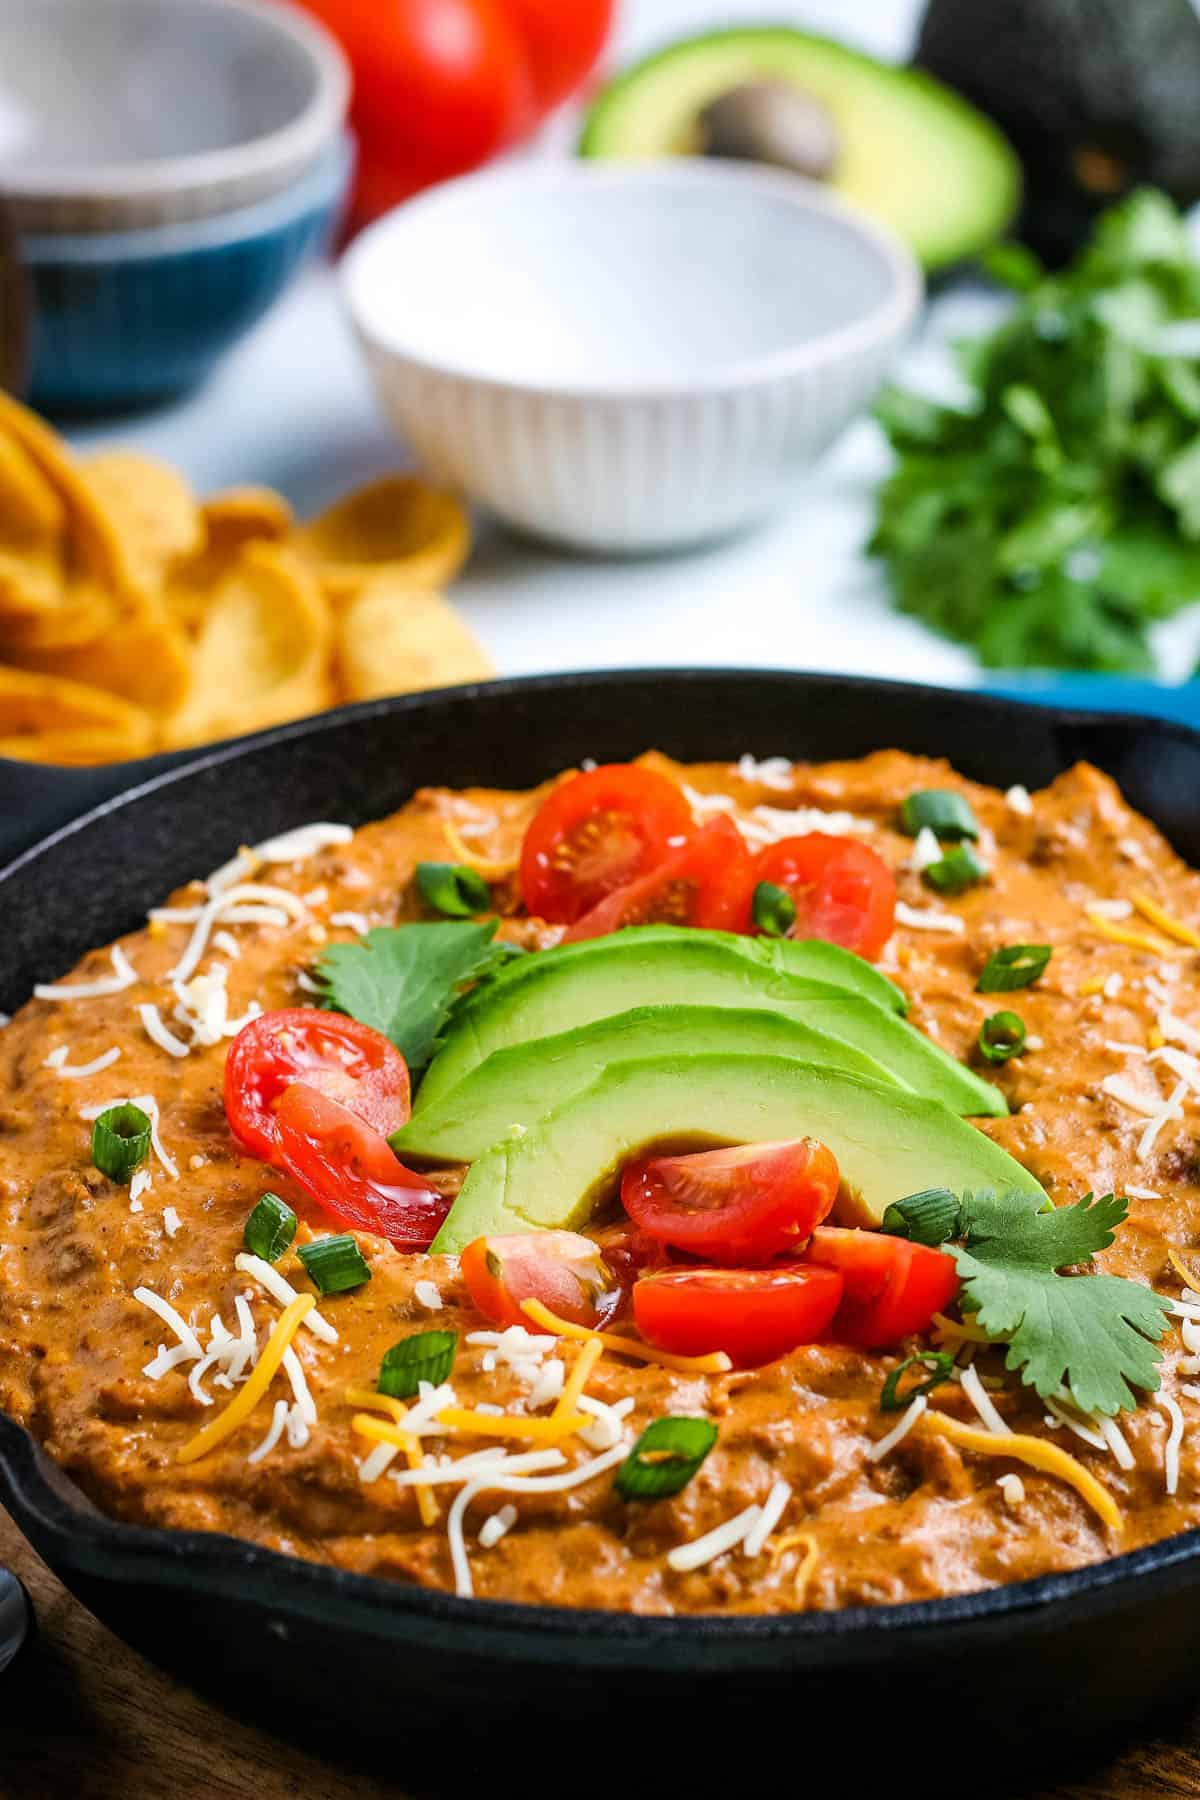 close up of chili dip, topped with sliced avocado, cilantro, and fresh diced tomatoes, in cast iron skillet